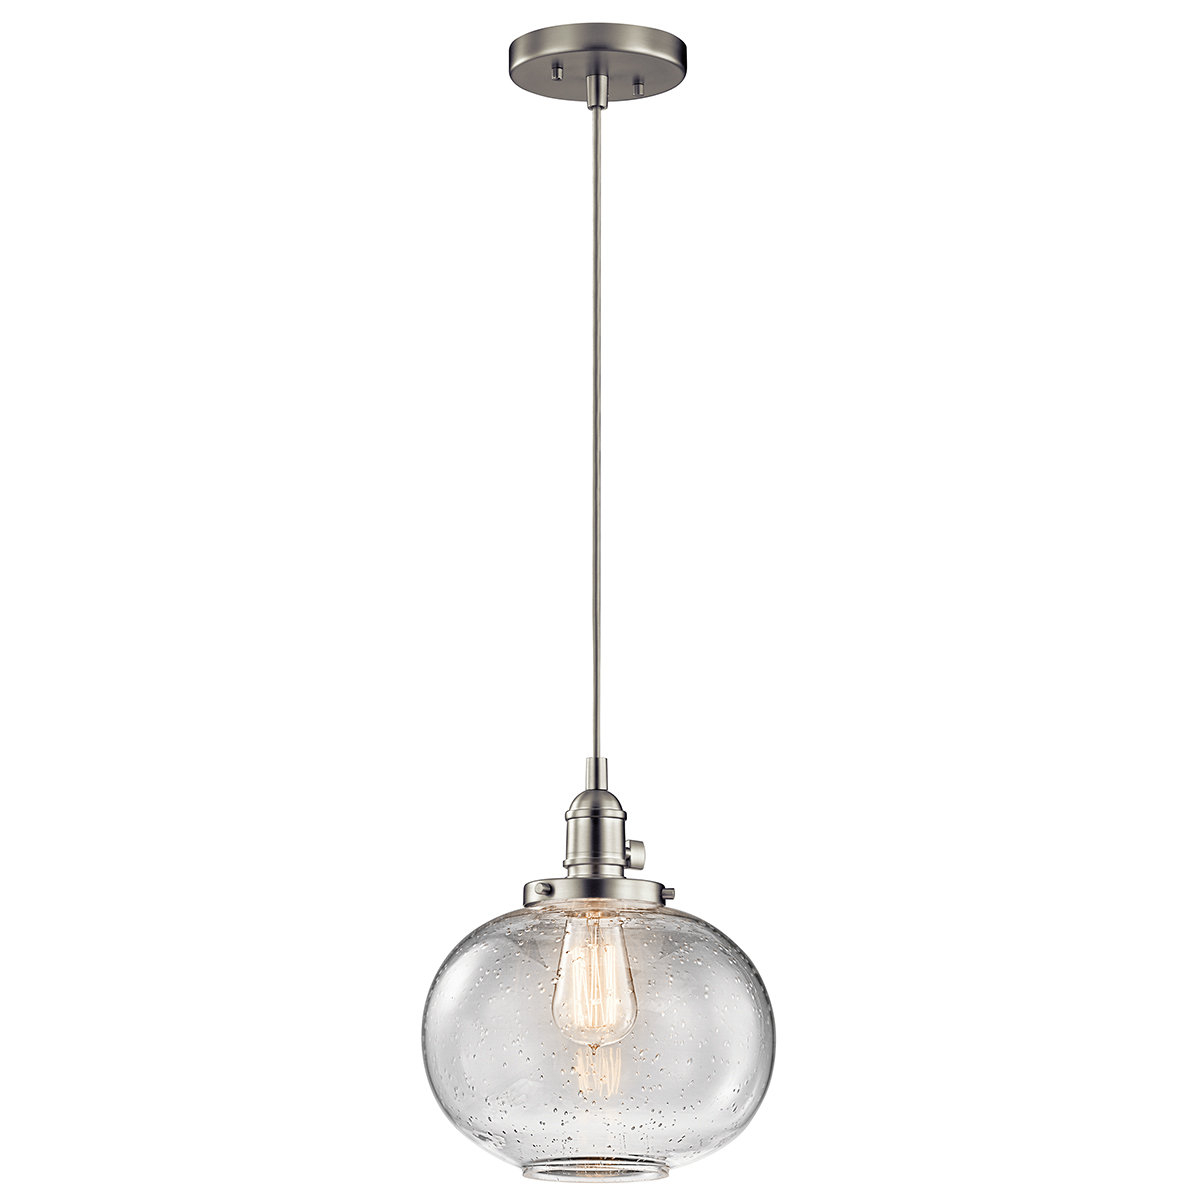 Antioch 1 Light Single Globe Pendant Throughout Betsy 1 Light Single Globe Pendants (View 20 of 30)